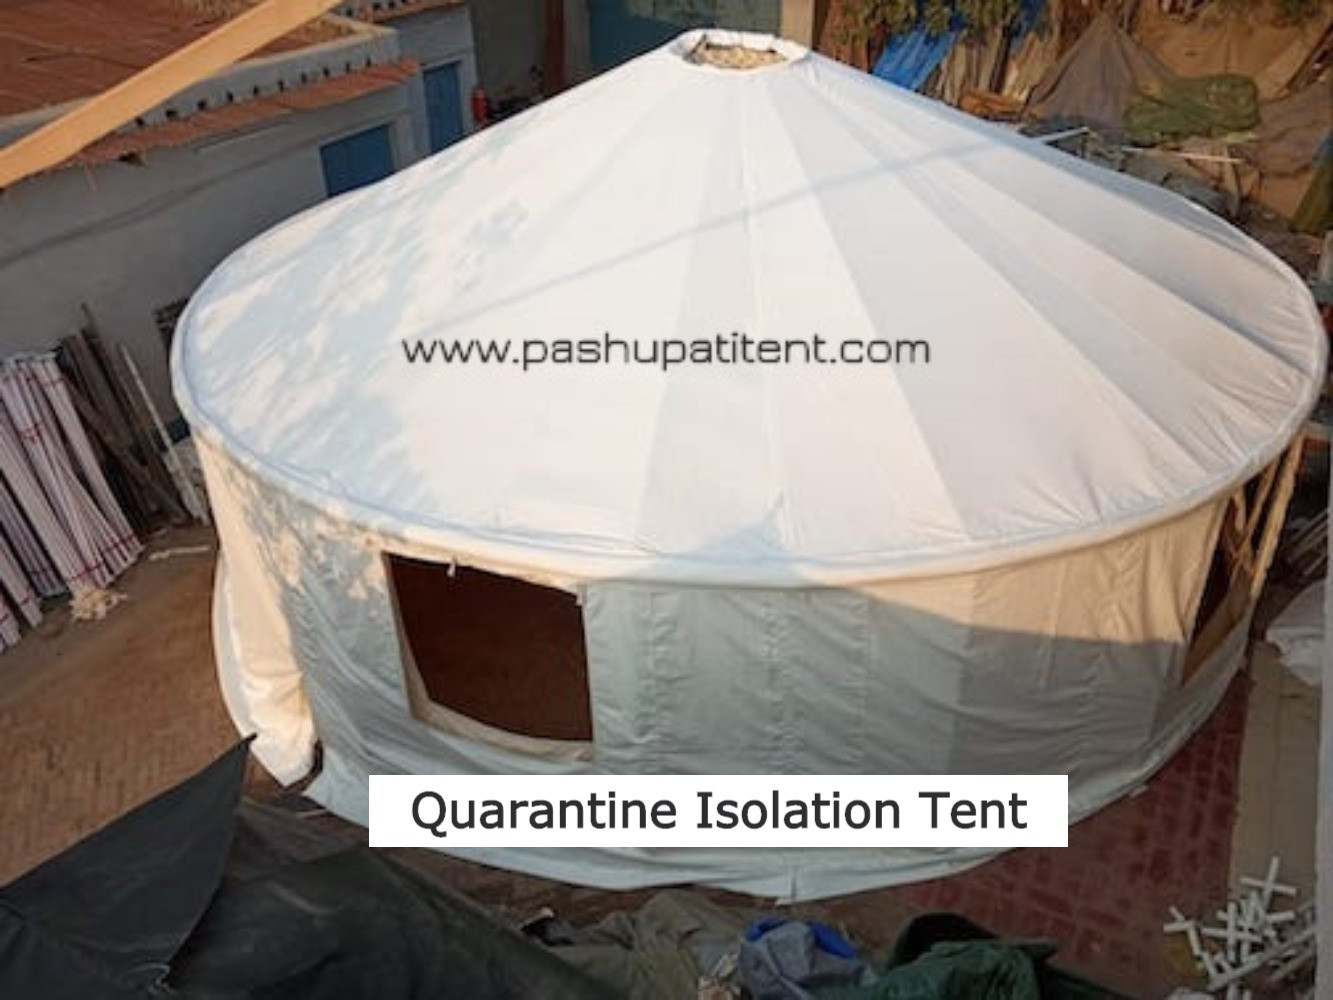 Quarantine Isolation tent.jpg